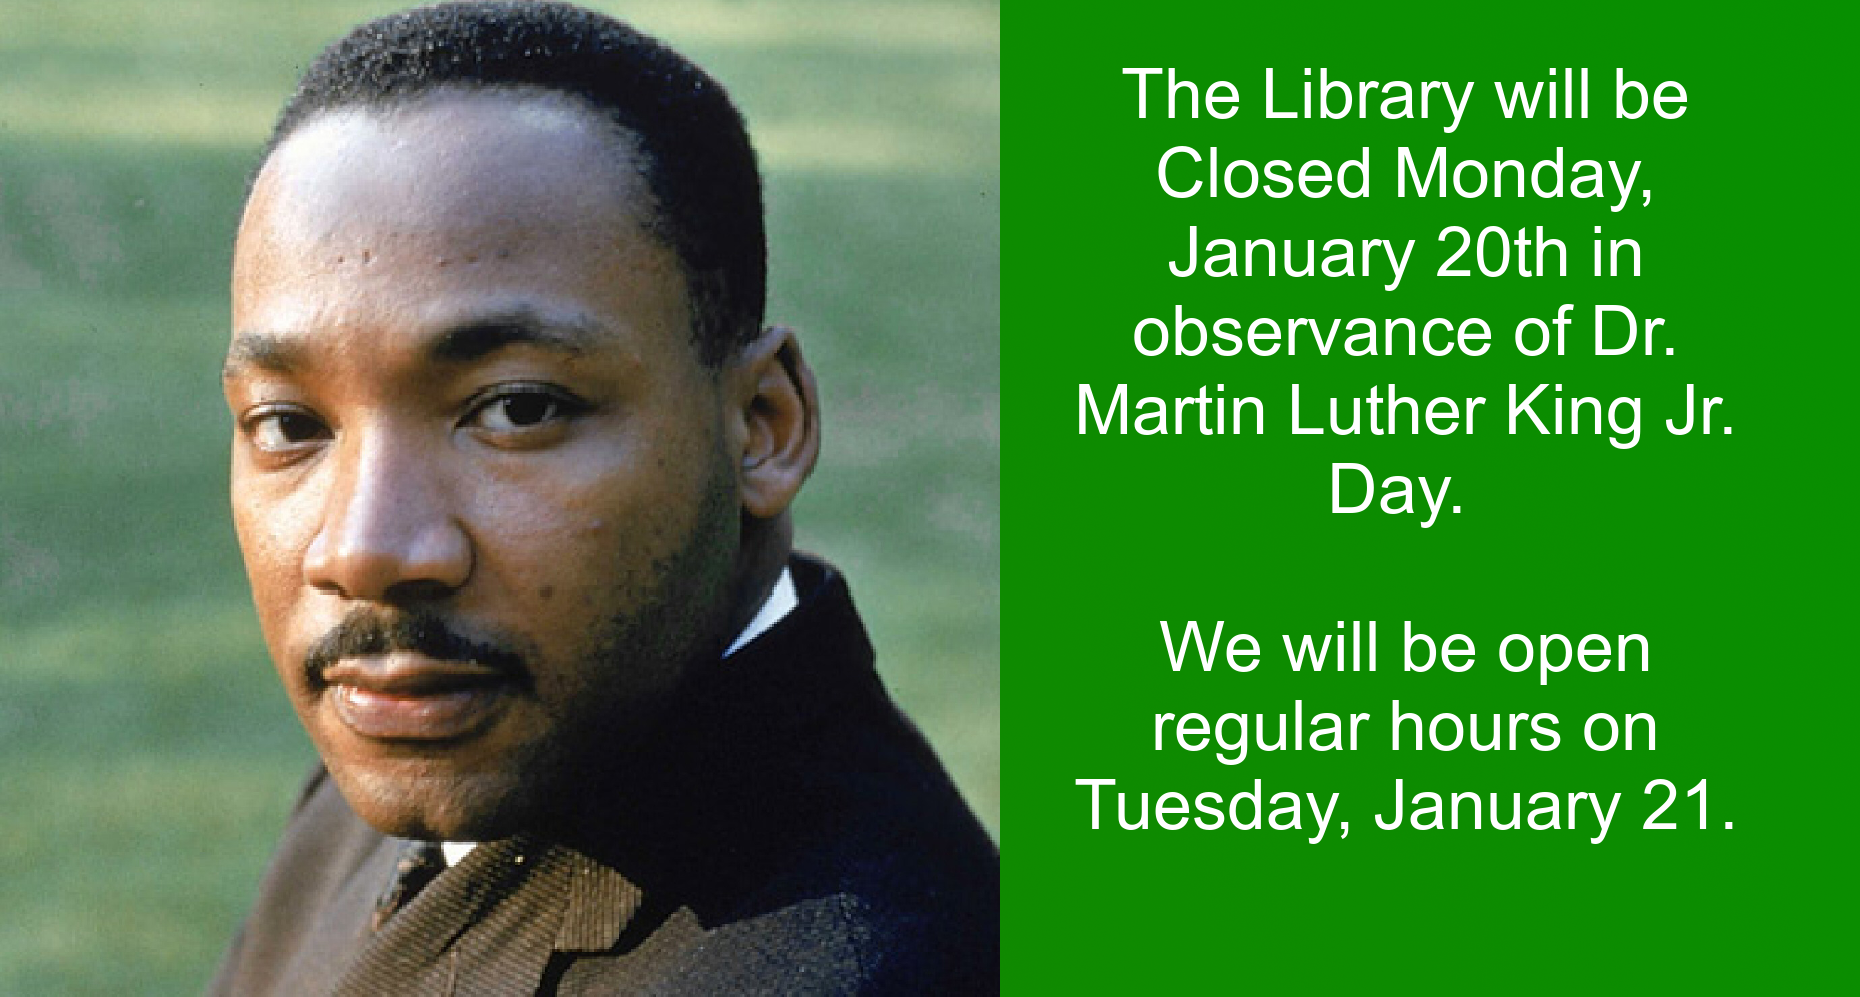 The library will be Closed on Monday, January 20 in observance of Martin Luther King Jr. Day.